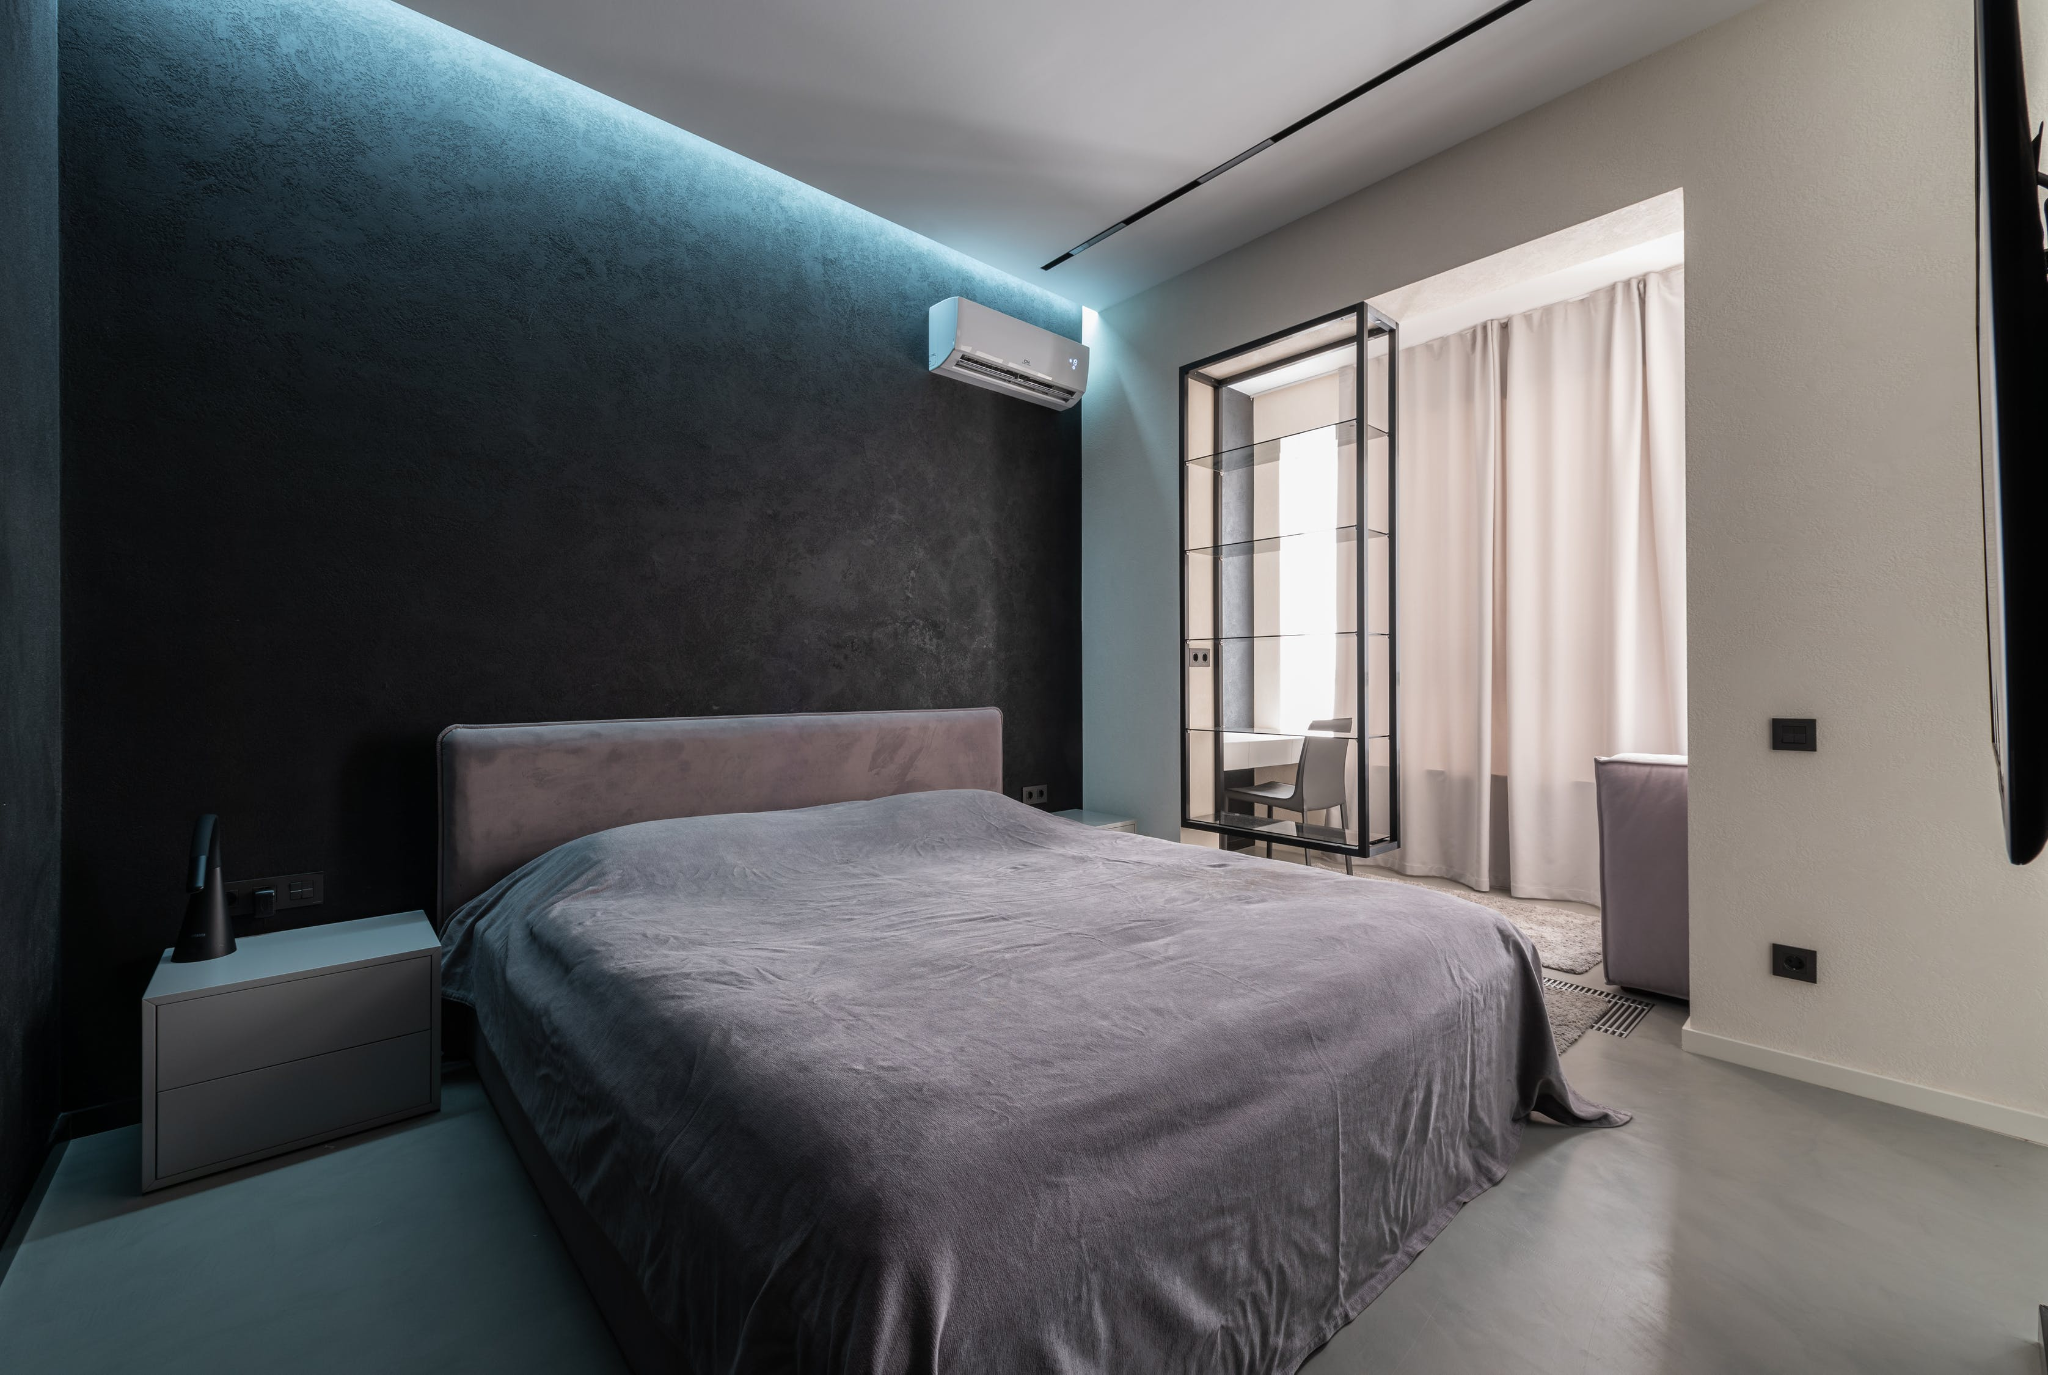 Modern bedroom with black walls, grey bed, and split-type air conditioner